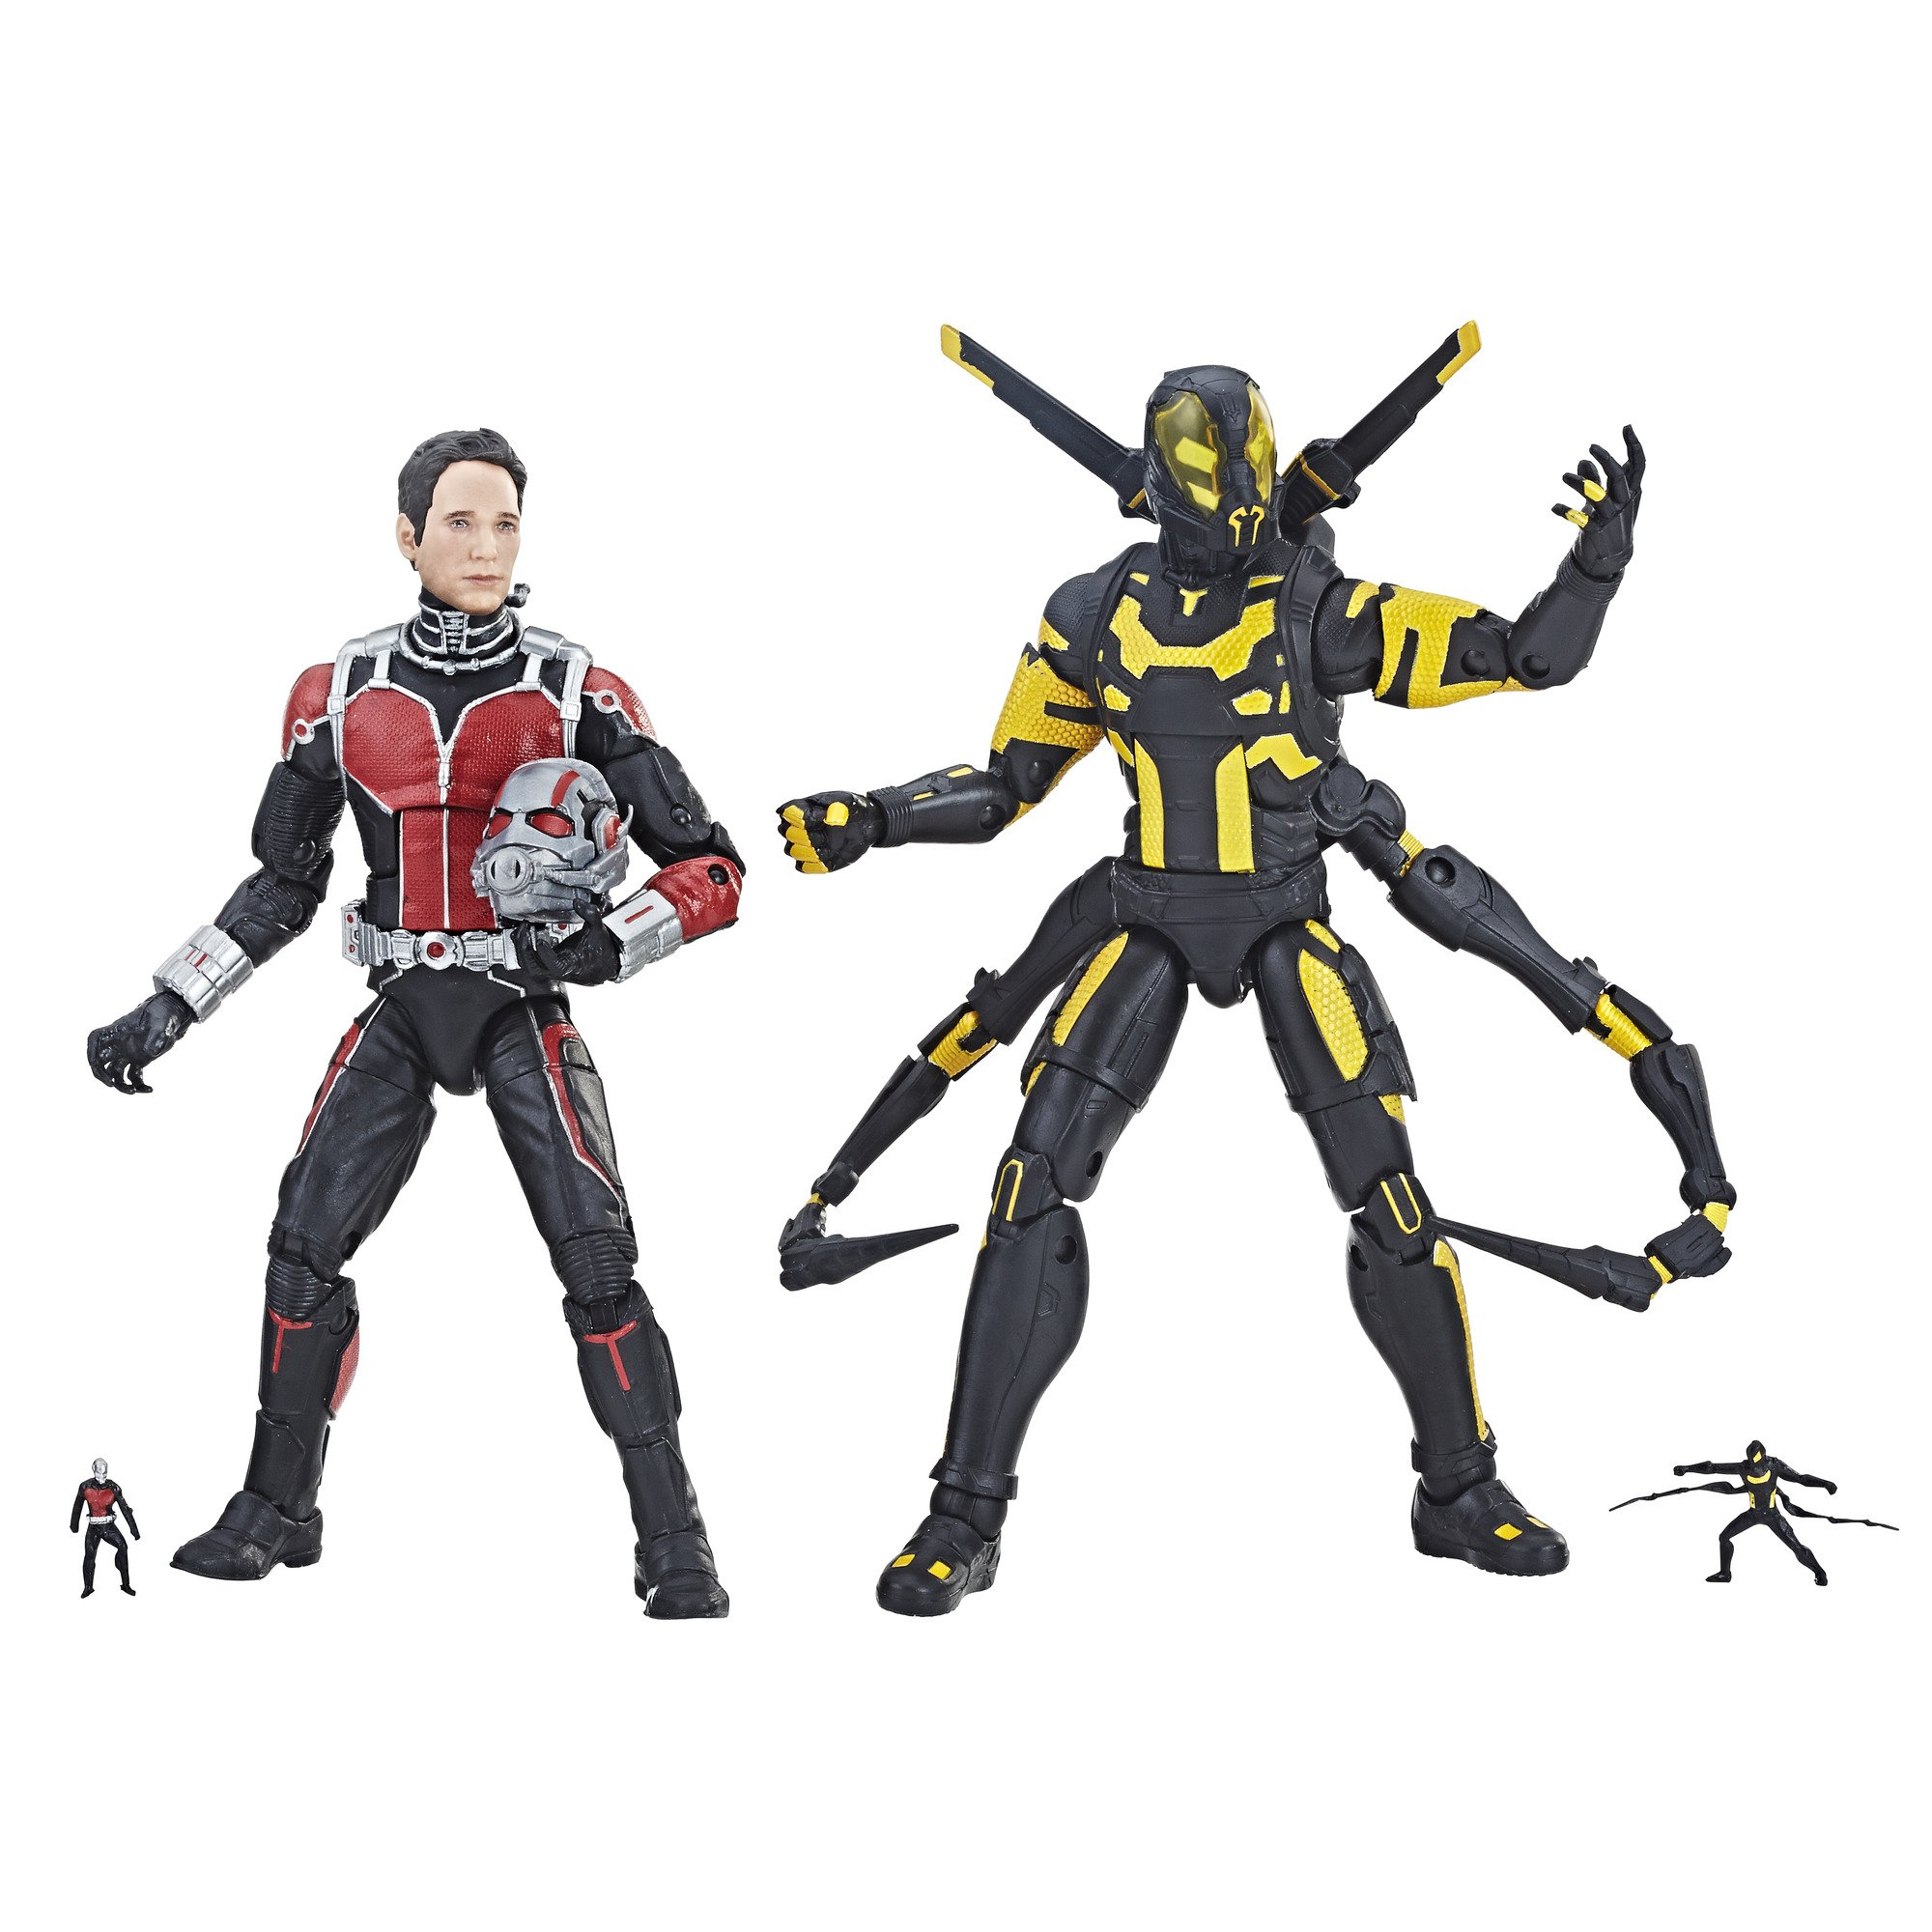 Marvel Studios: Marvel Studios: The First Ten Years Ant-Man Ant-Man And